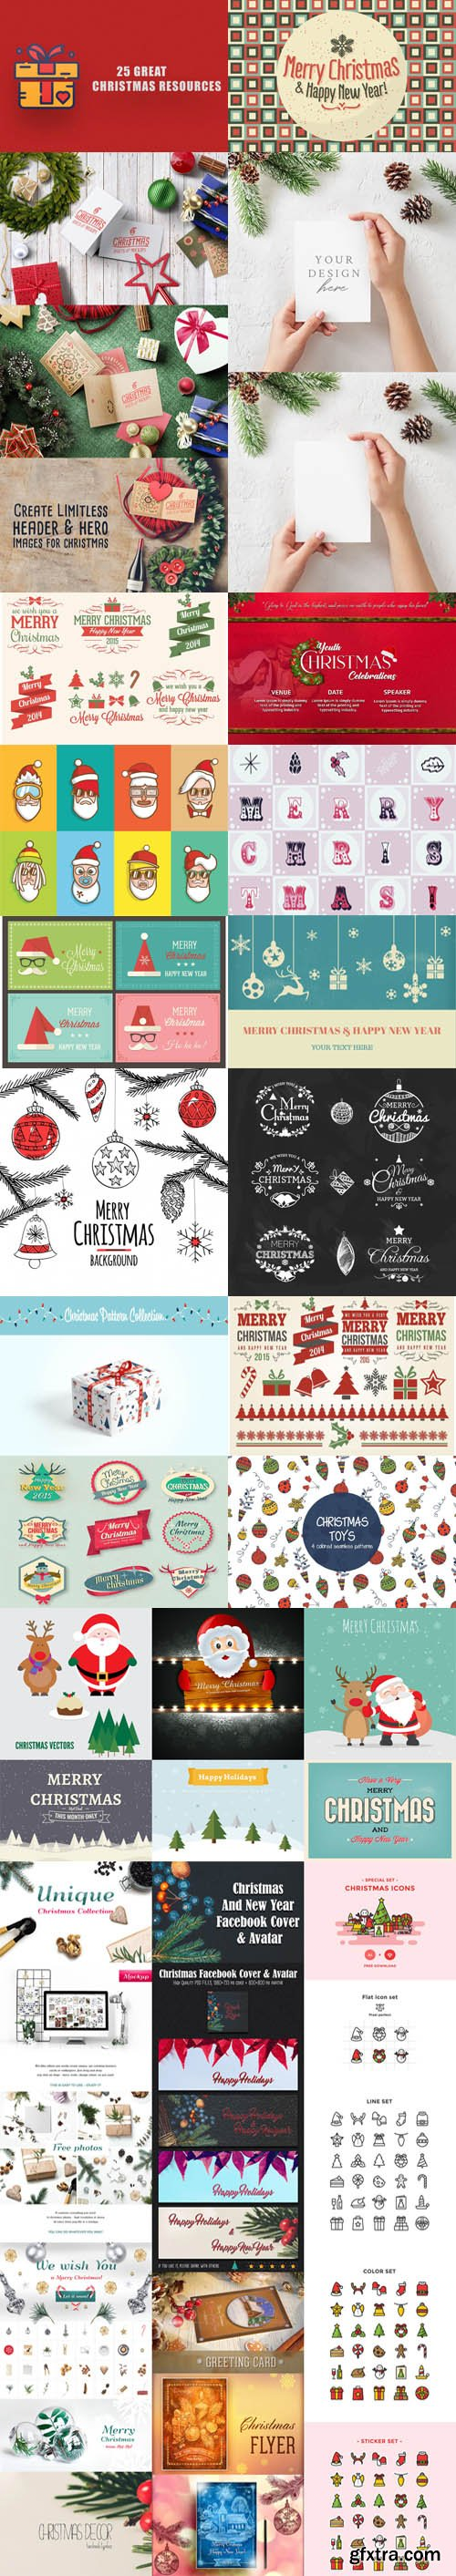 25 Christmas Templates & Resources for Designers [Ai/EPS/PSD/PNG]